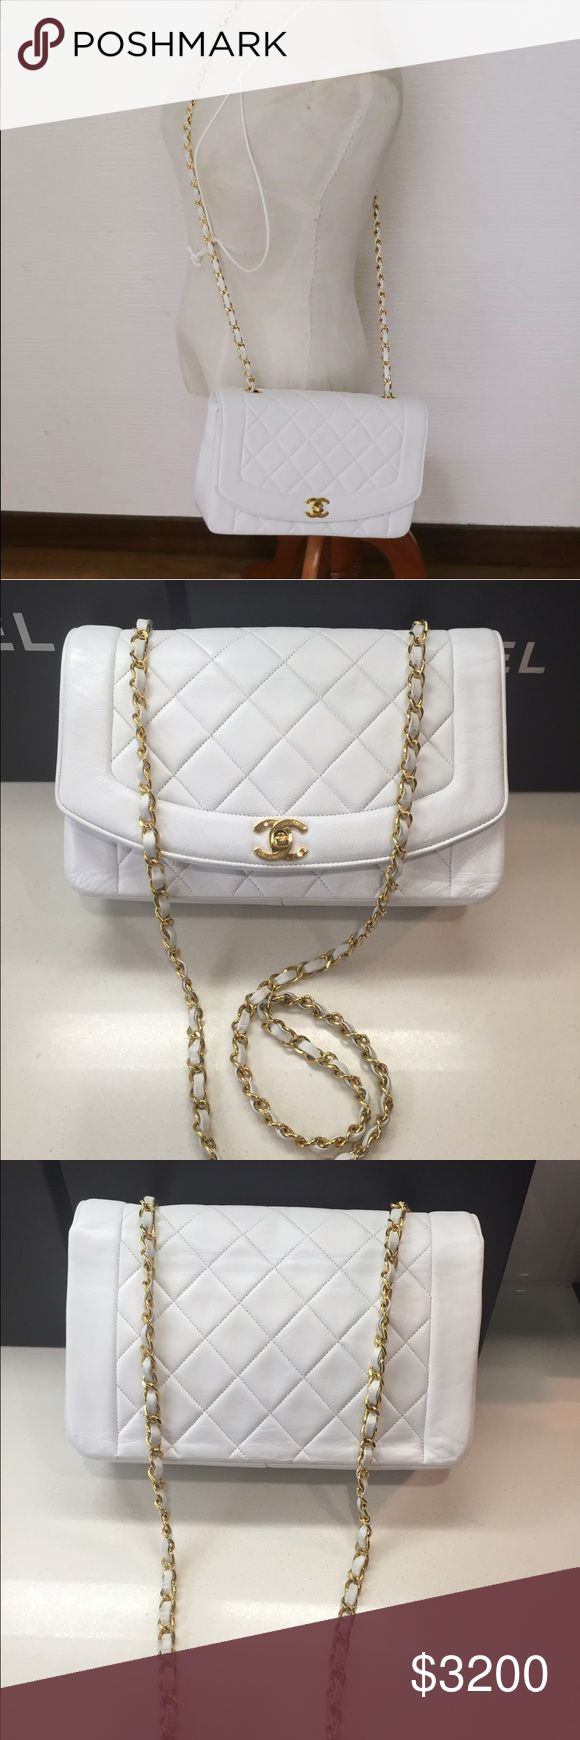 """Auth CHANEL White Princess Diana Single Flap CHANEL Vintage Medium Classic Quilted """"Diana"""" Single Flap Cross-body Shoulder Bag   100% Authentic White Lambskin Leather 24k gold plated hardware  Approximate L 10"""" x H 6.5"""" x D 3"""" Shoulder drop 21"""" Condition: Beautiful Preowned Condition with minor wrinkles Made in France  Includes: Dust bag without the hologram sticker intact  More photos are available CHANEL Bags Crossbody Bags"""